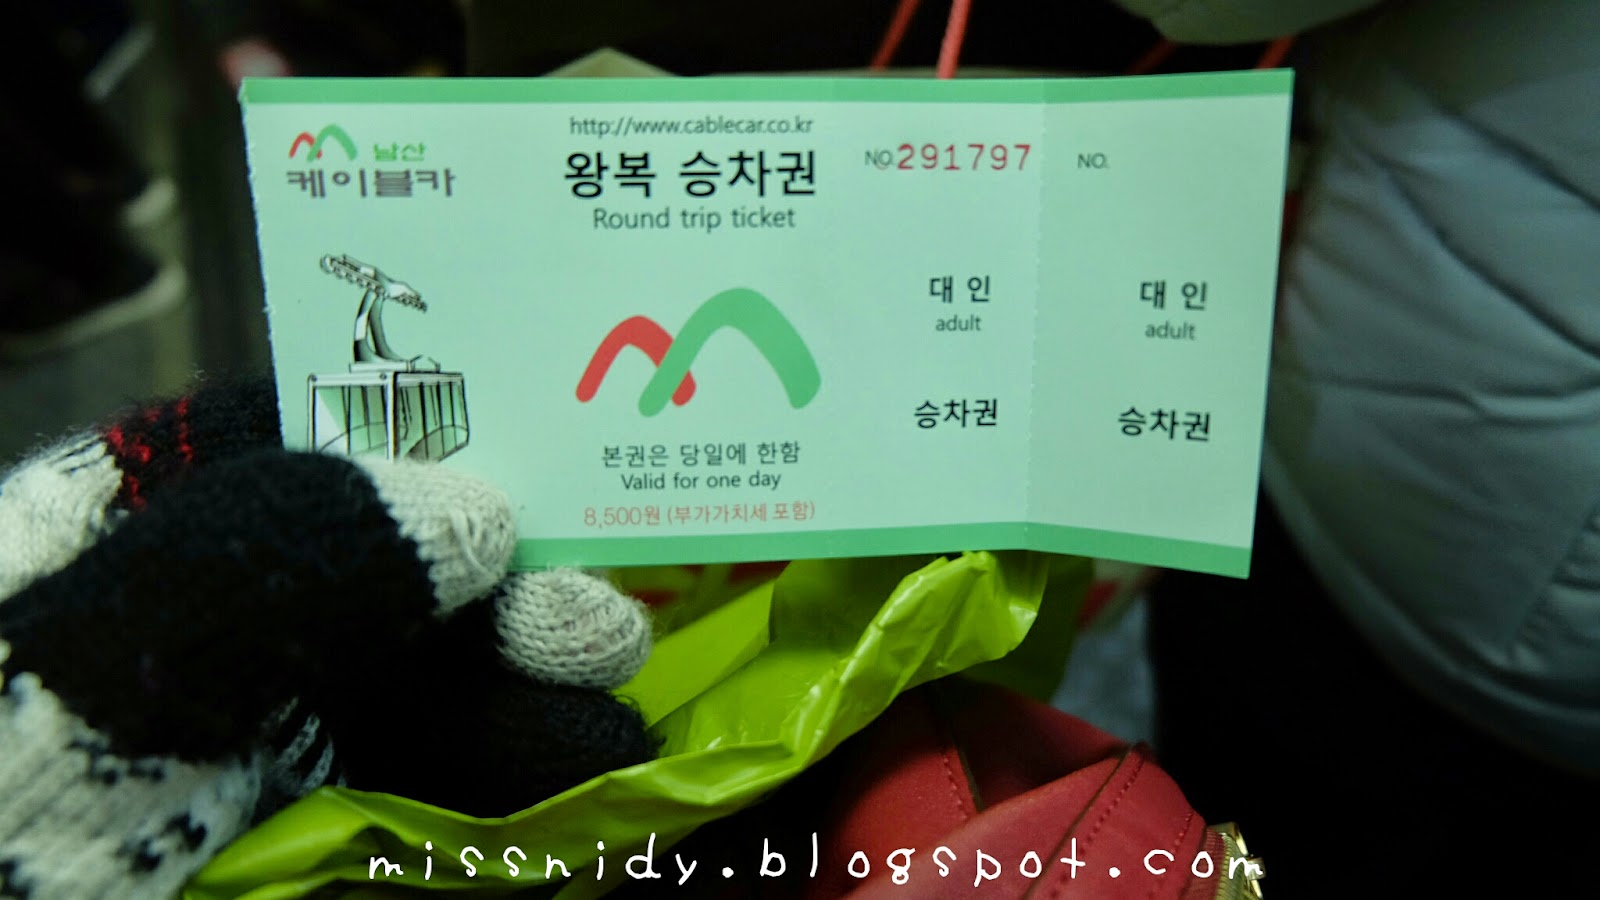 harga tiket cable car di nseoul tower seoul